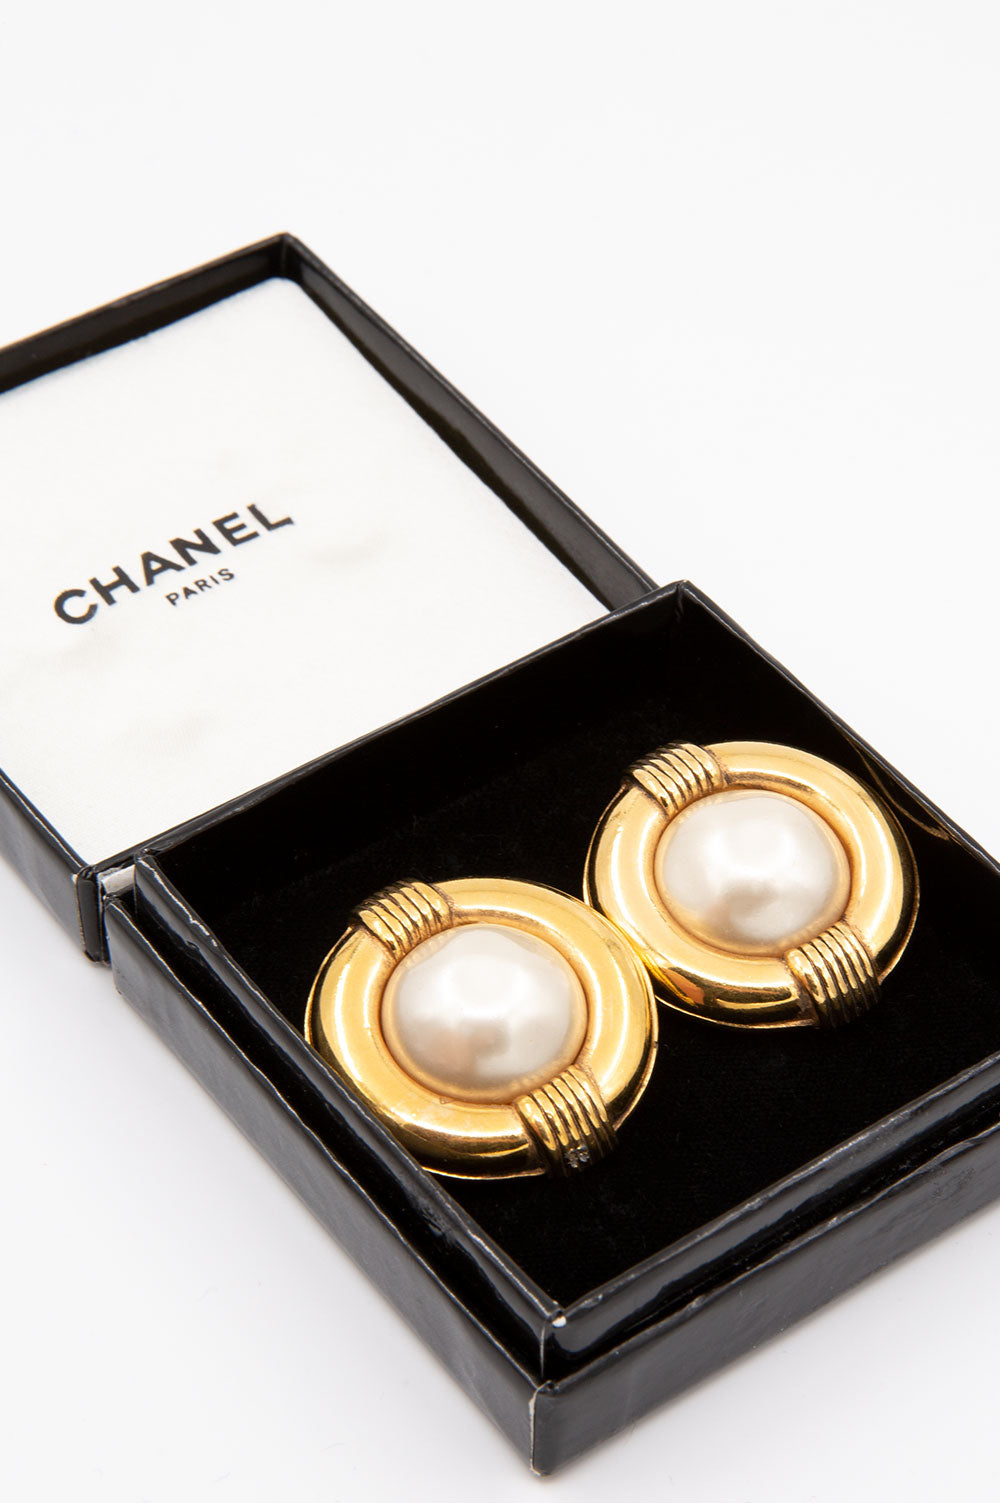 Chanel Vintage Ear Clips in Gold mit Perlen.